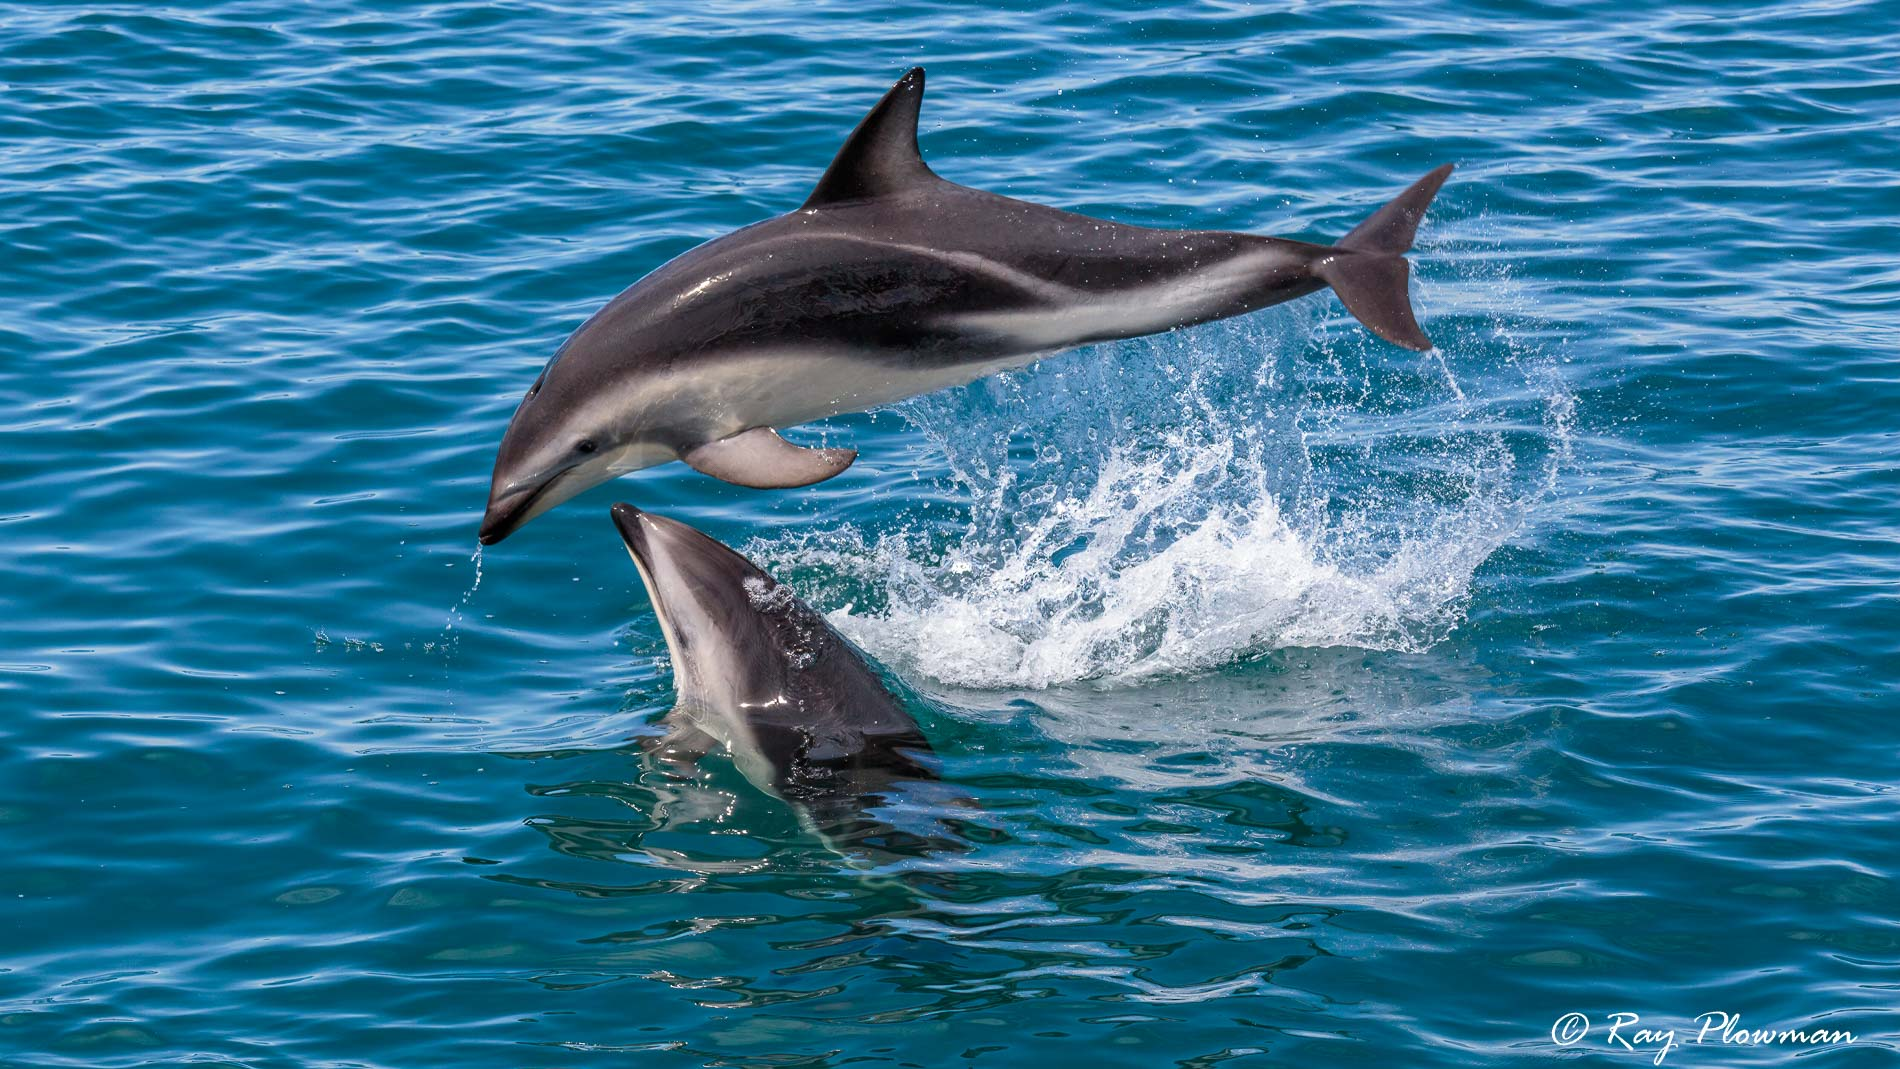 Dusky Dolphins (Lagenorhynchus obscurus) playing leapfrog at Kaikoura Pelagic in New Zealand